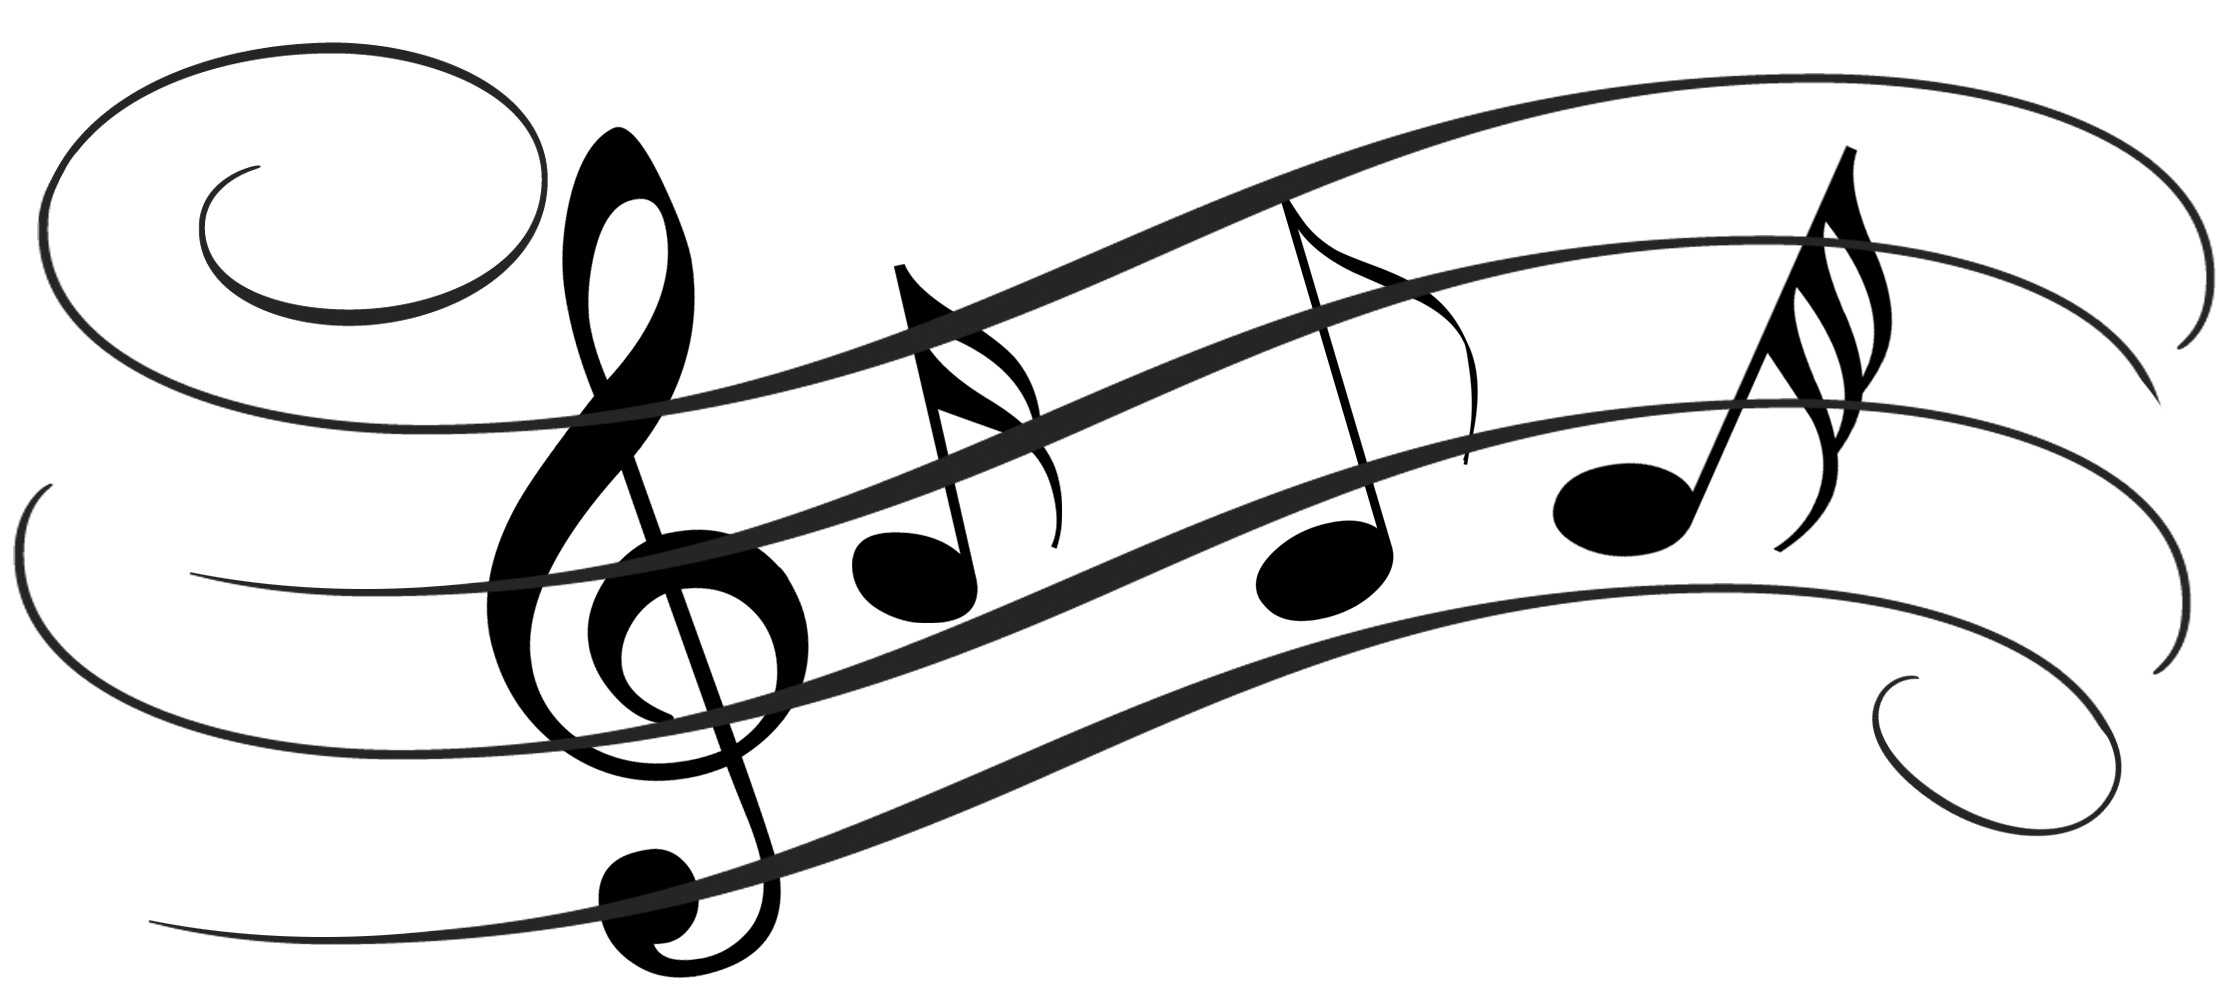 2236x1006 Music Staff Music Notes On Staff Clipart Free Images 2